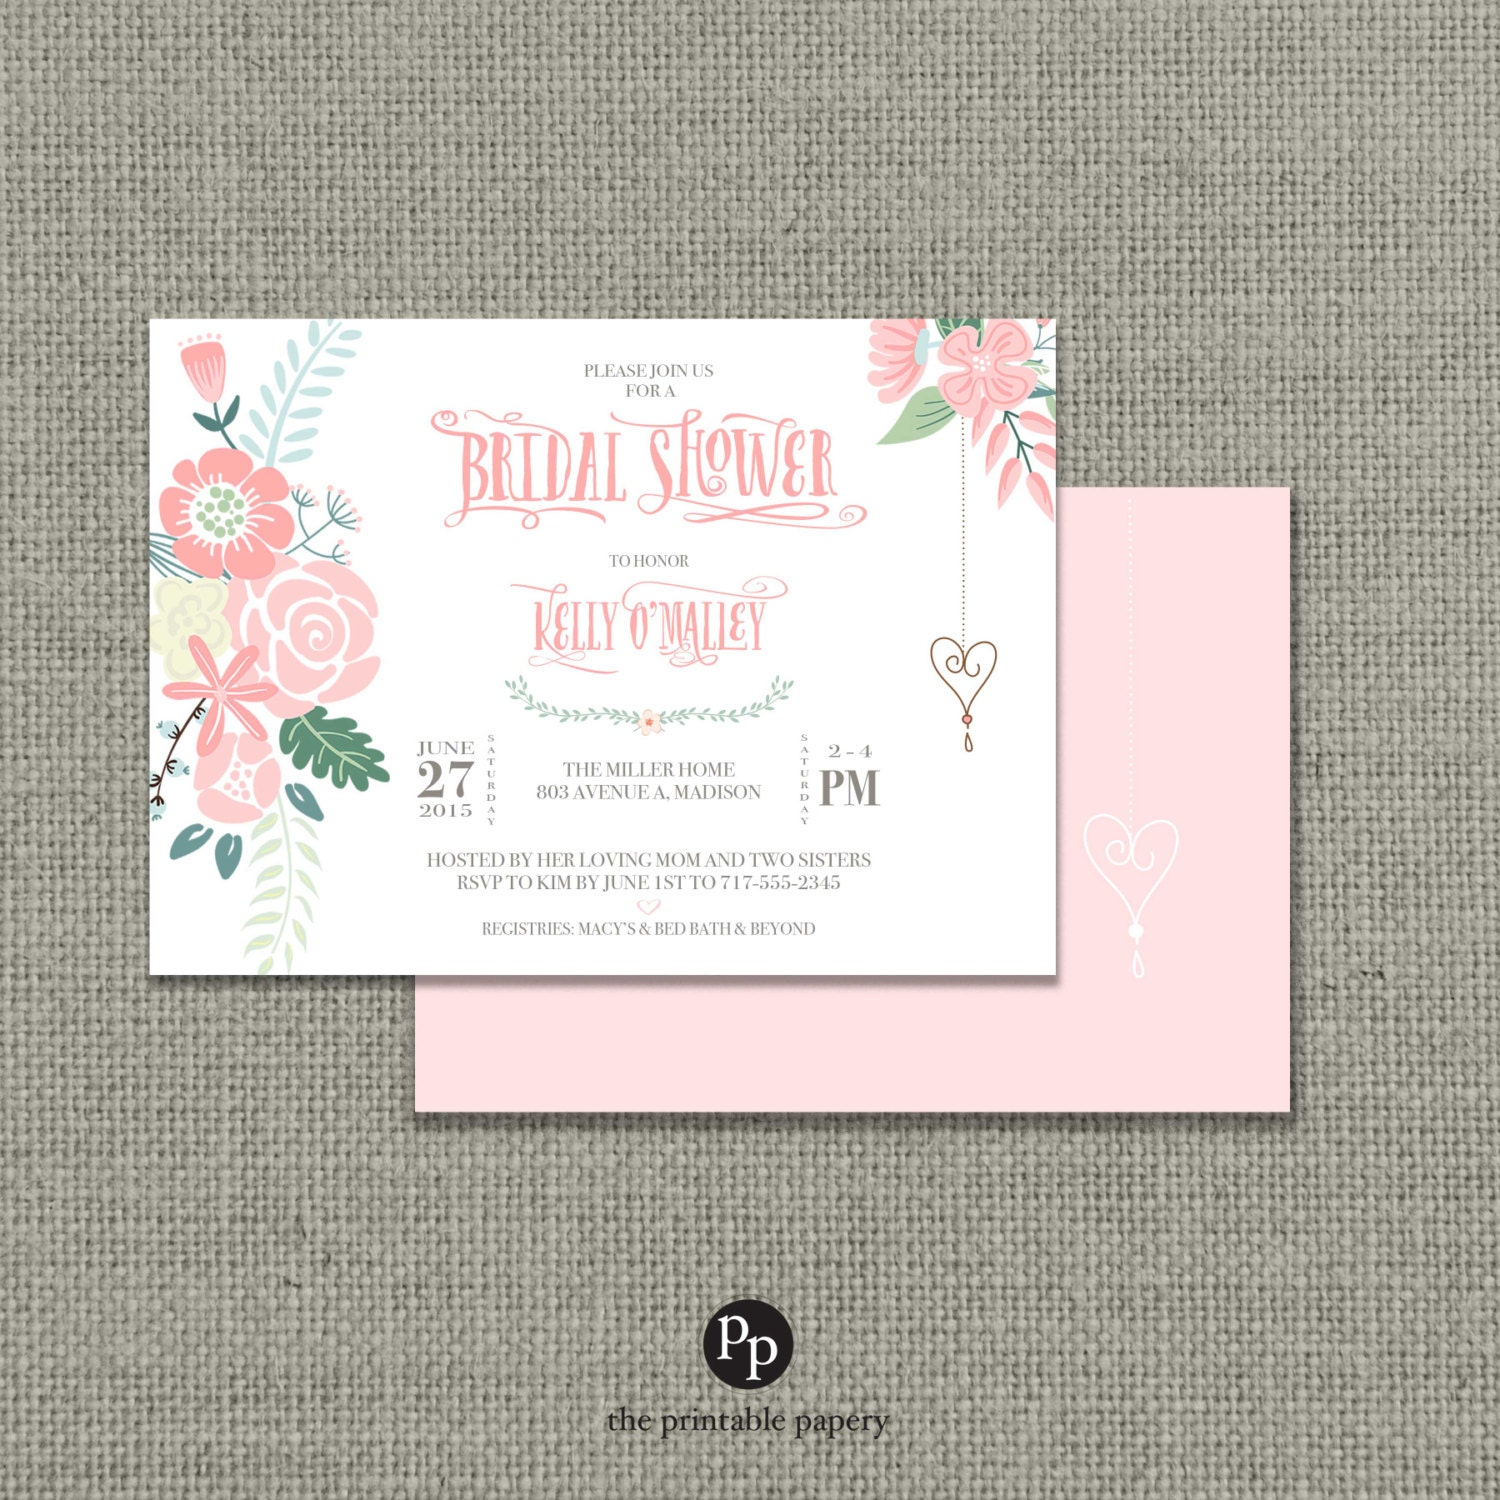 Printable Bridal Shower Invitation Card | Flower | Floral and Calligraphy Design | Customize | DIY - No. BRW7-7